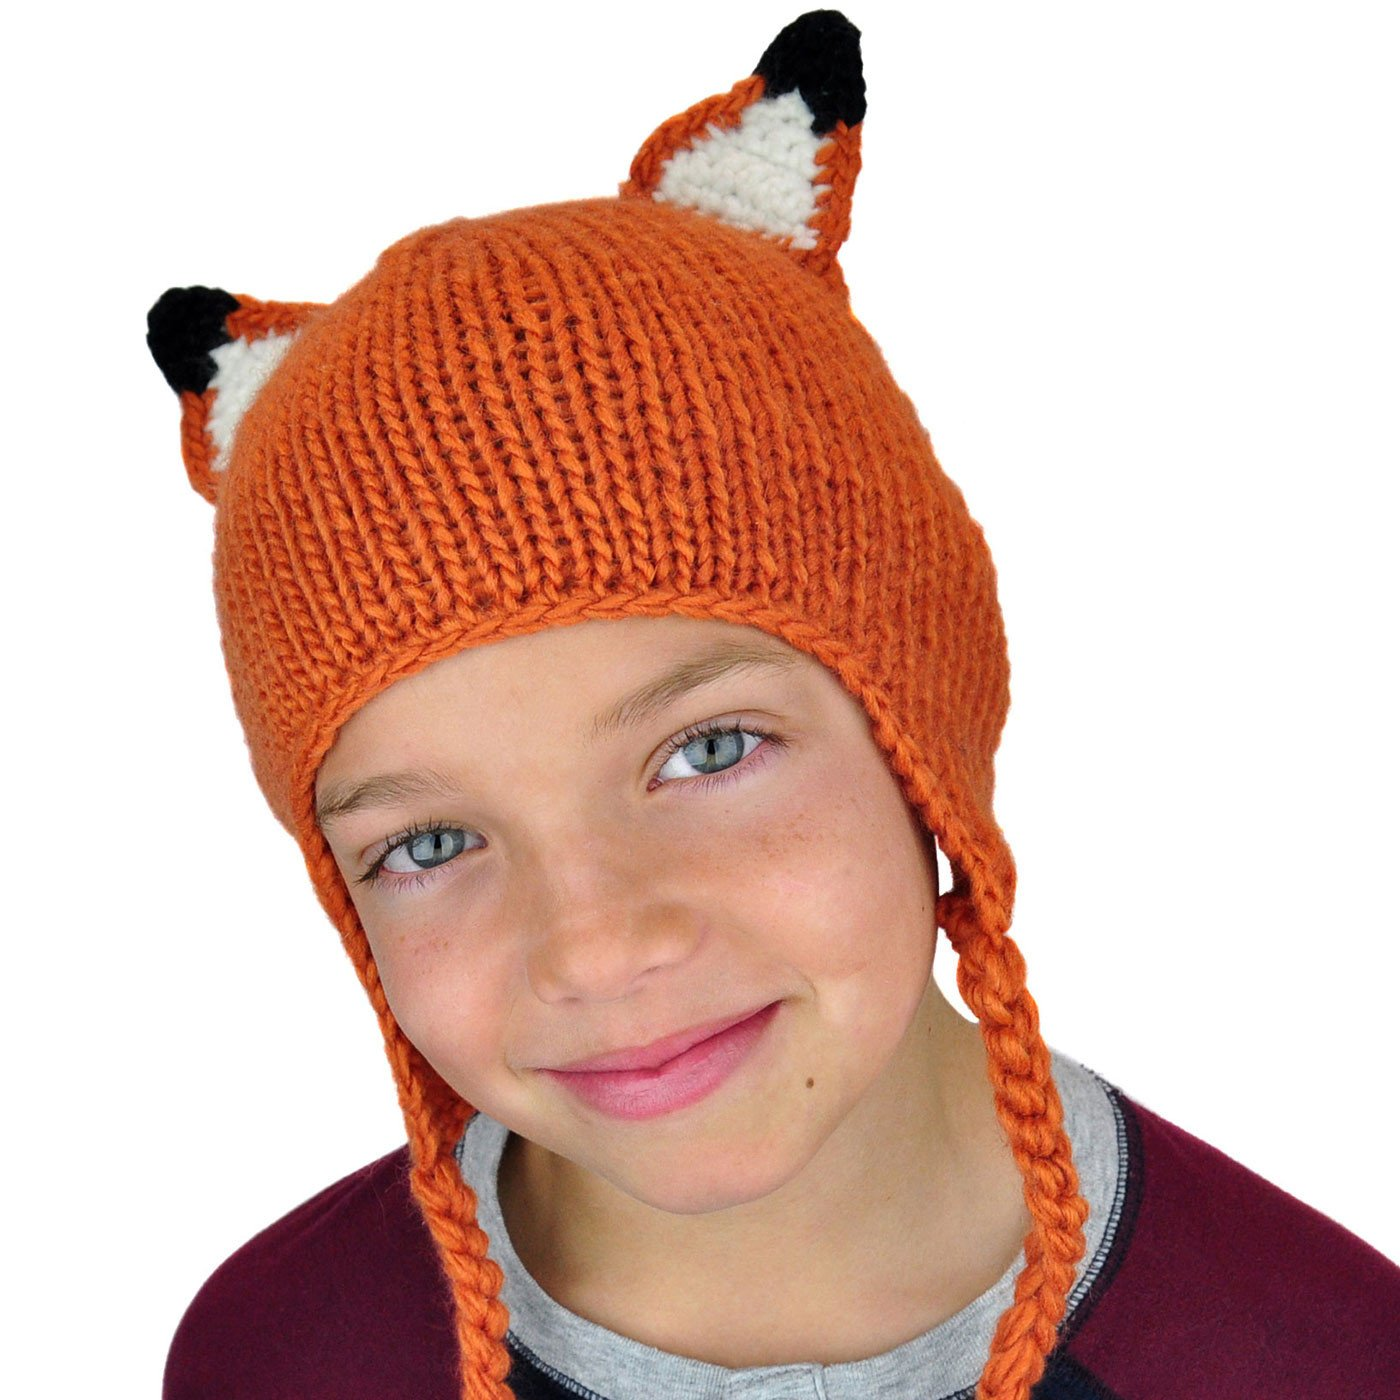 1175762ee13 FUNKY   FUN KNIT WINTER FOX HAT  Neon Eaters has been a leader in funky  knit hats since 2012. Their fun take on boys   girls winter hats make  boring beanies ...